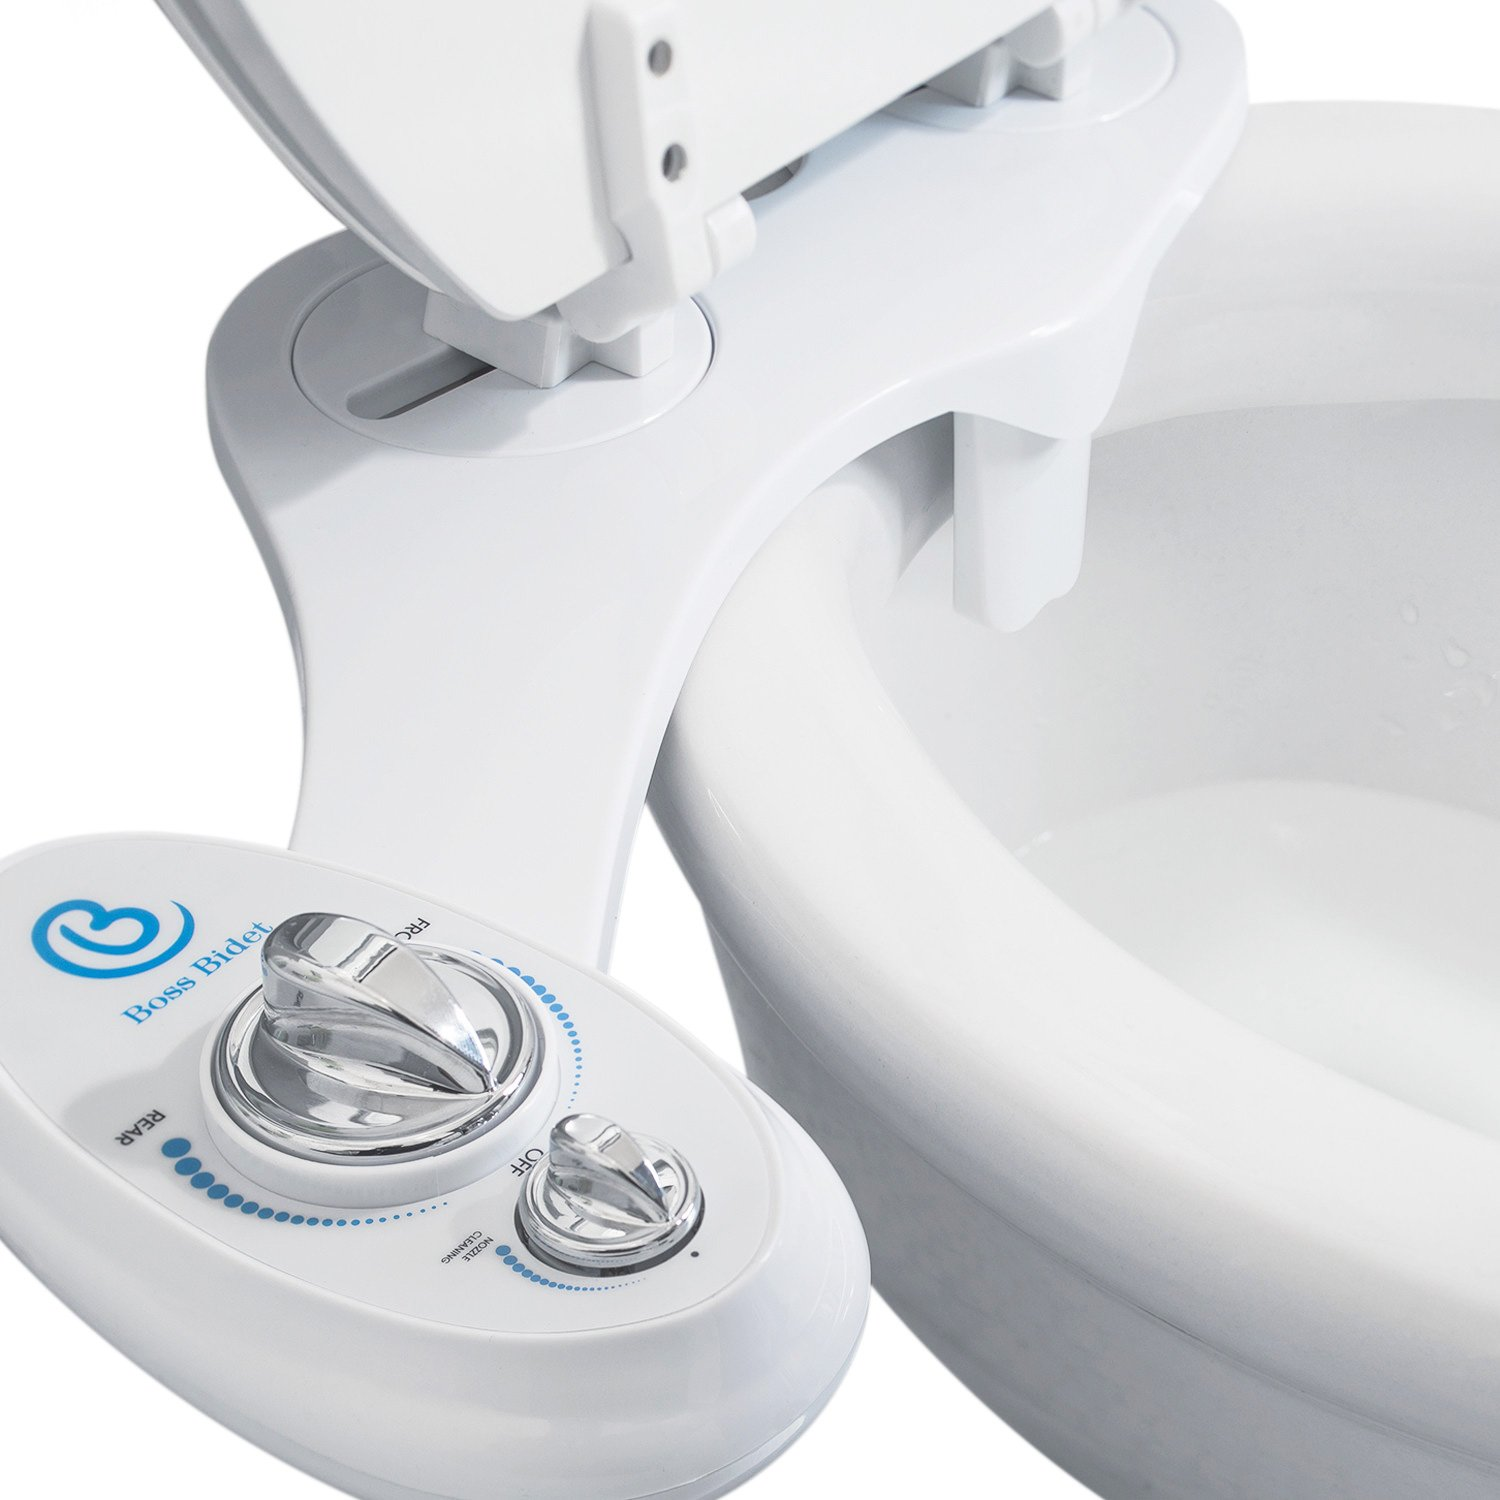 Boss Bidet Toilet Attachment   Cleans Your Rear   Warranty - Lifetime   30 Day Guarantee Dual Nozzle   Self Cleaning Feature   Water Sprayer   15 Minute Installation   Luxury White & Blue